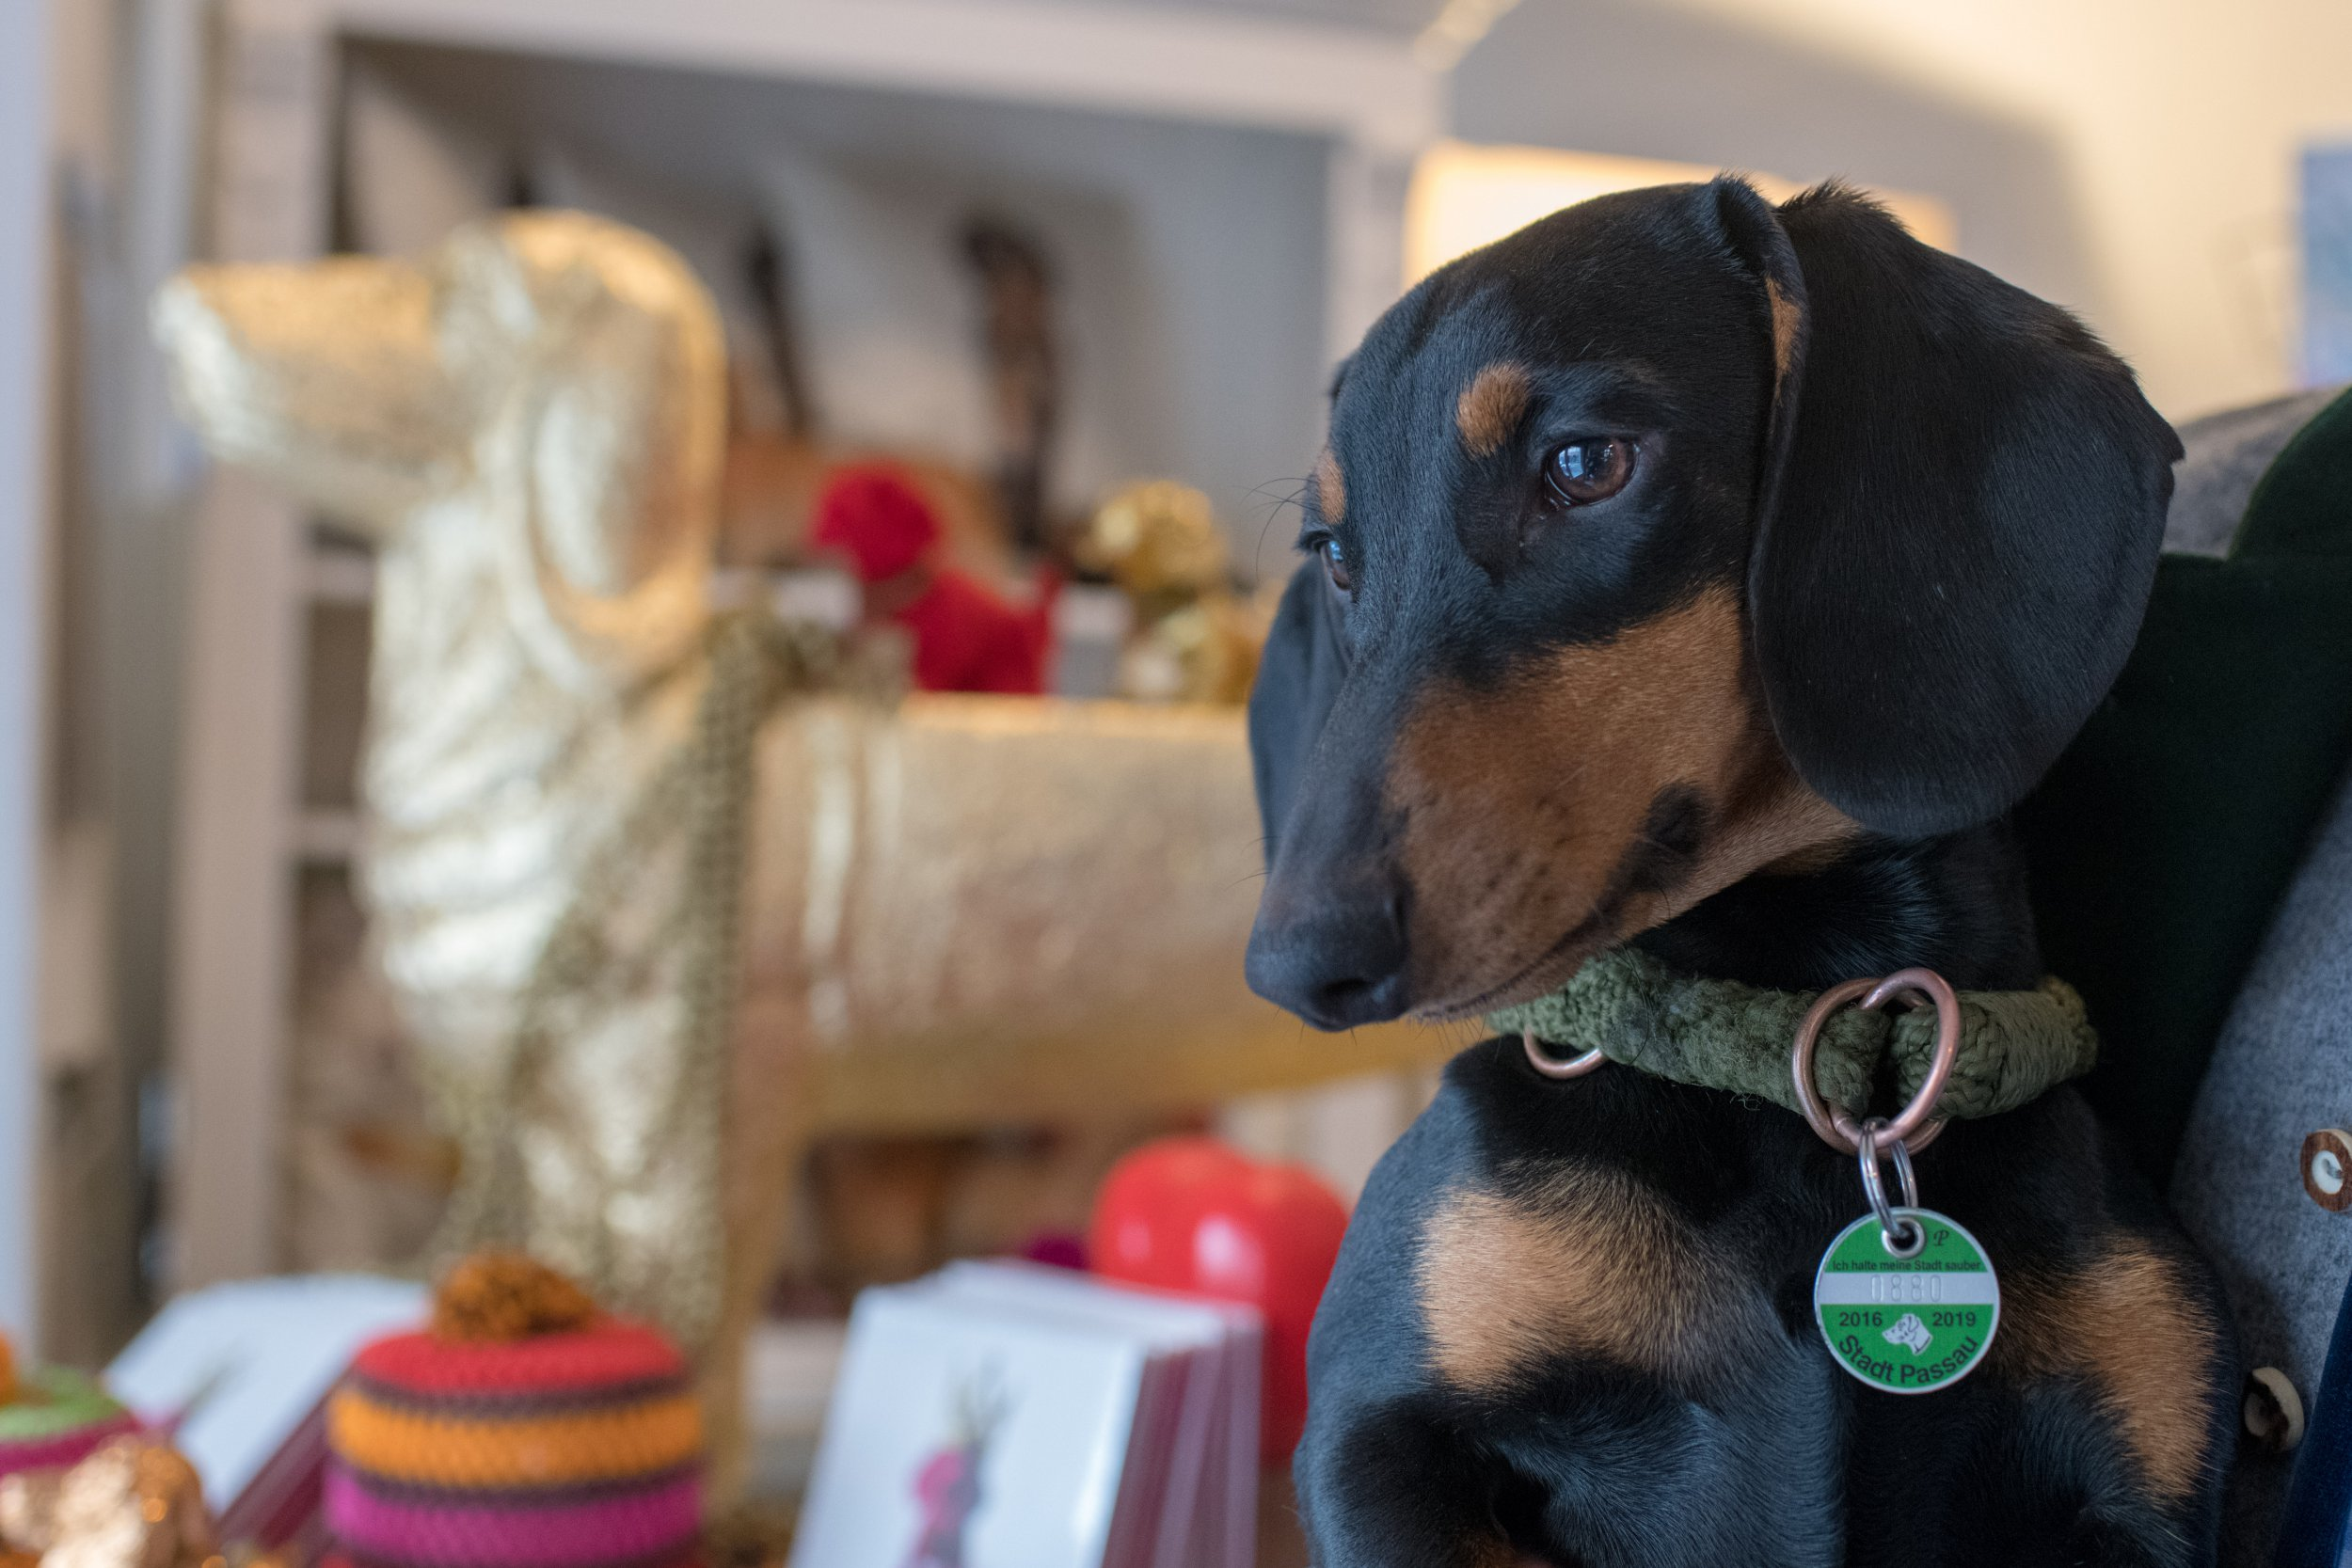 Well hot dog, there's now a sausage dog museum